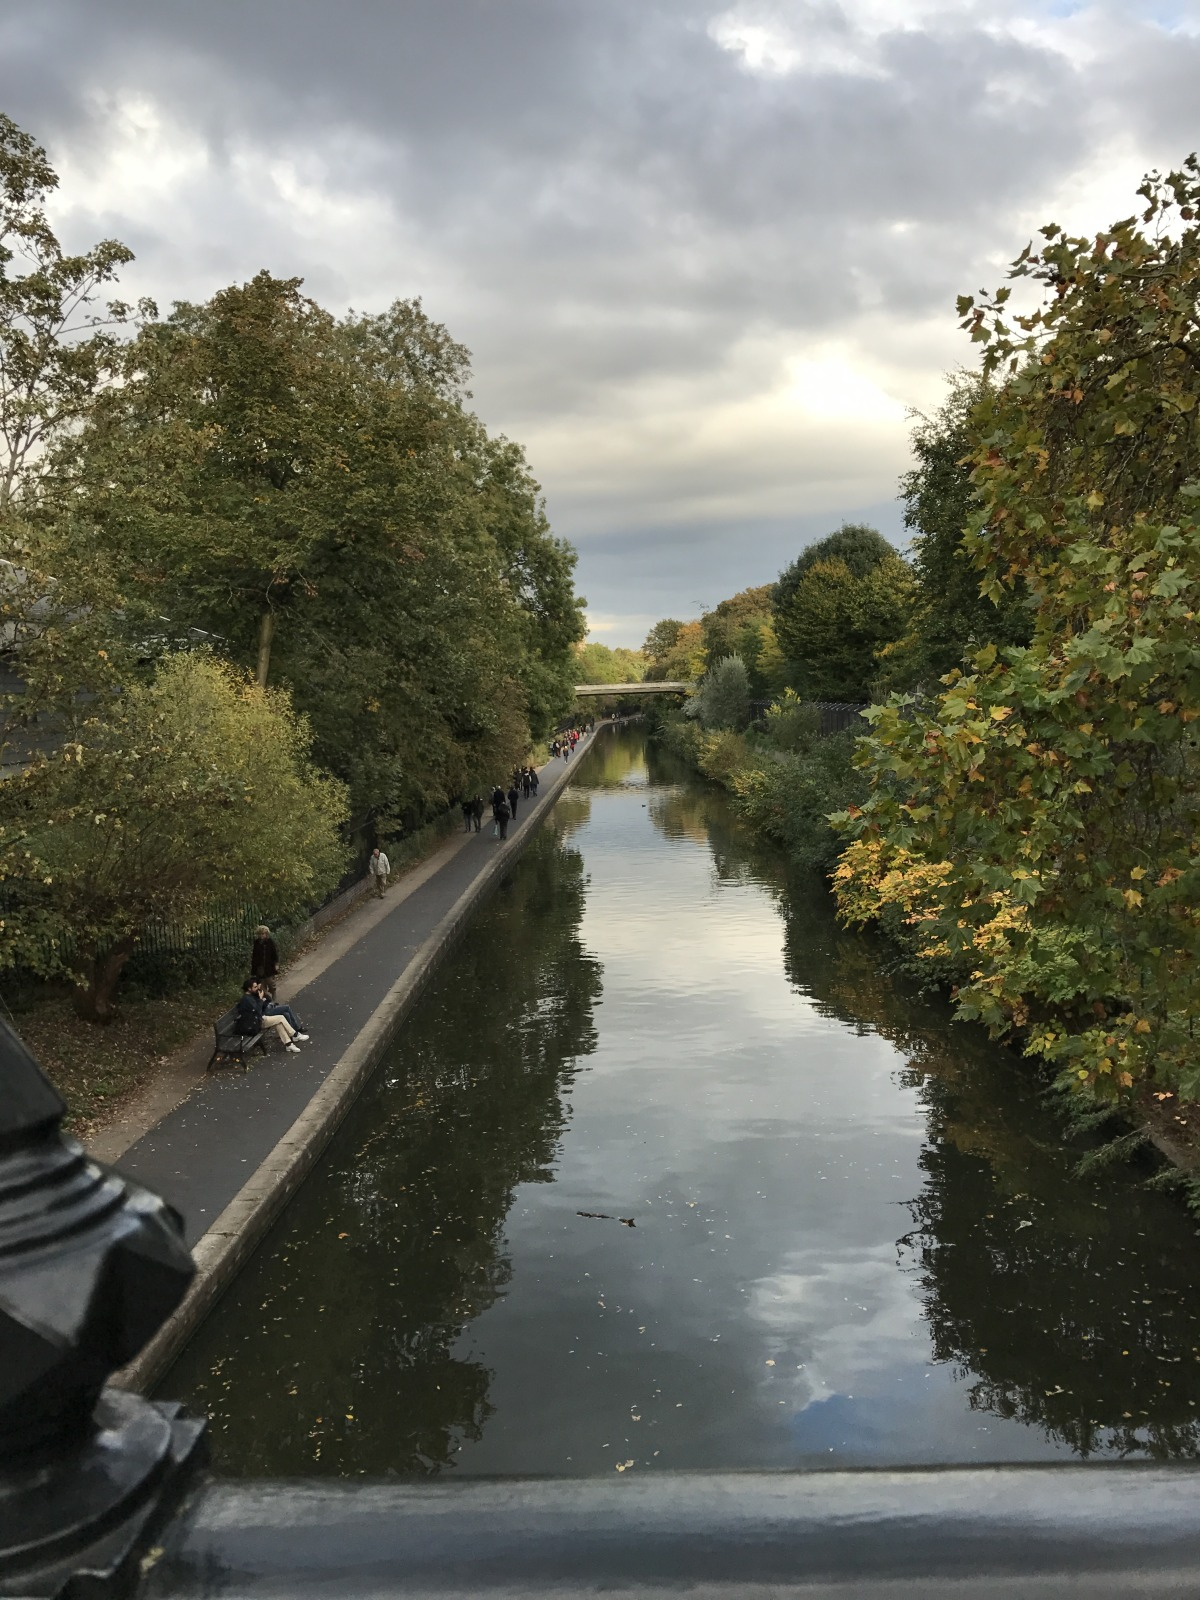 Regents Canal, the scenic route to Camden Town